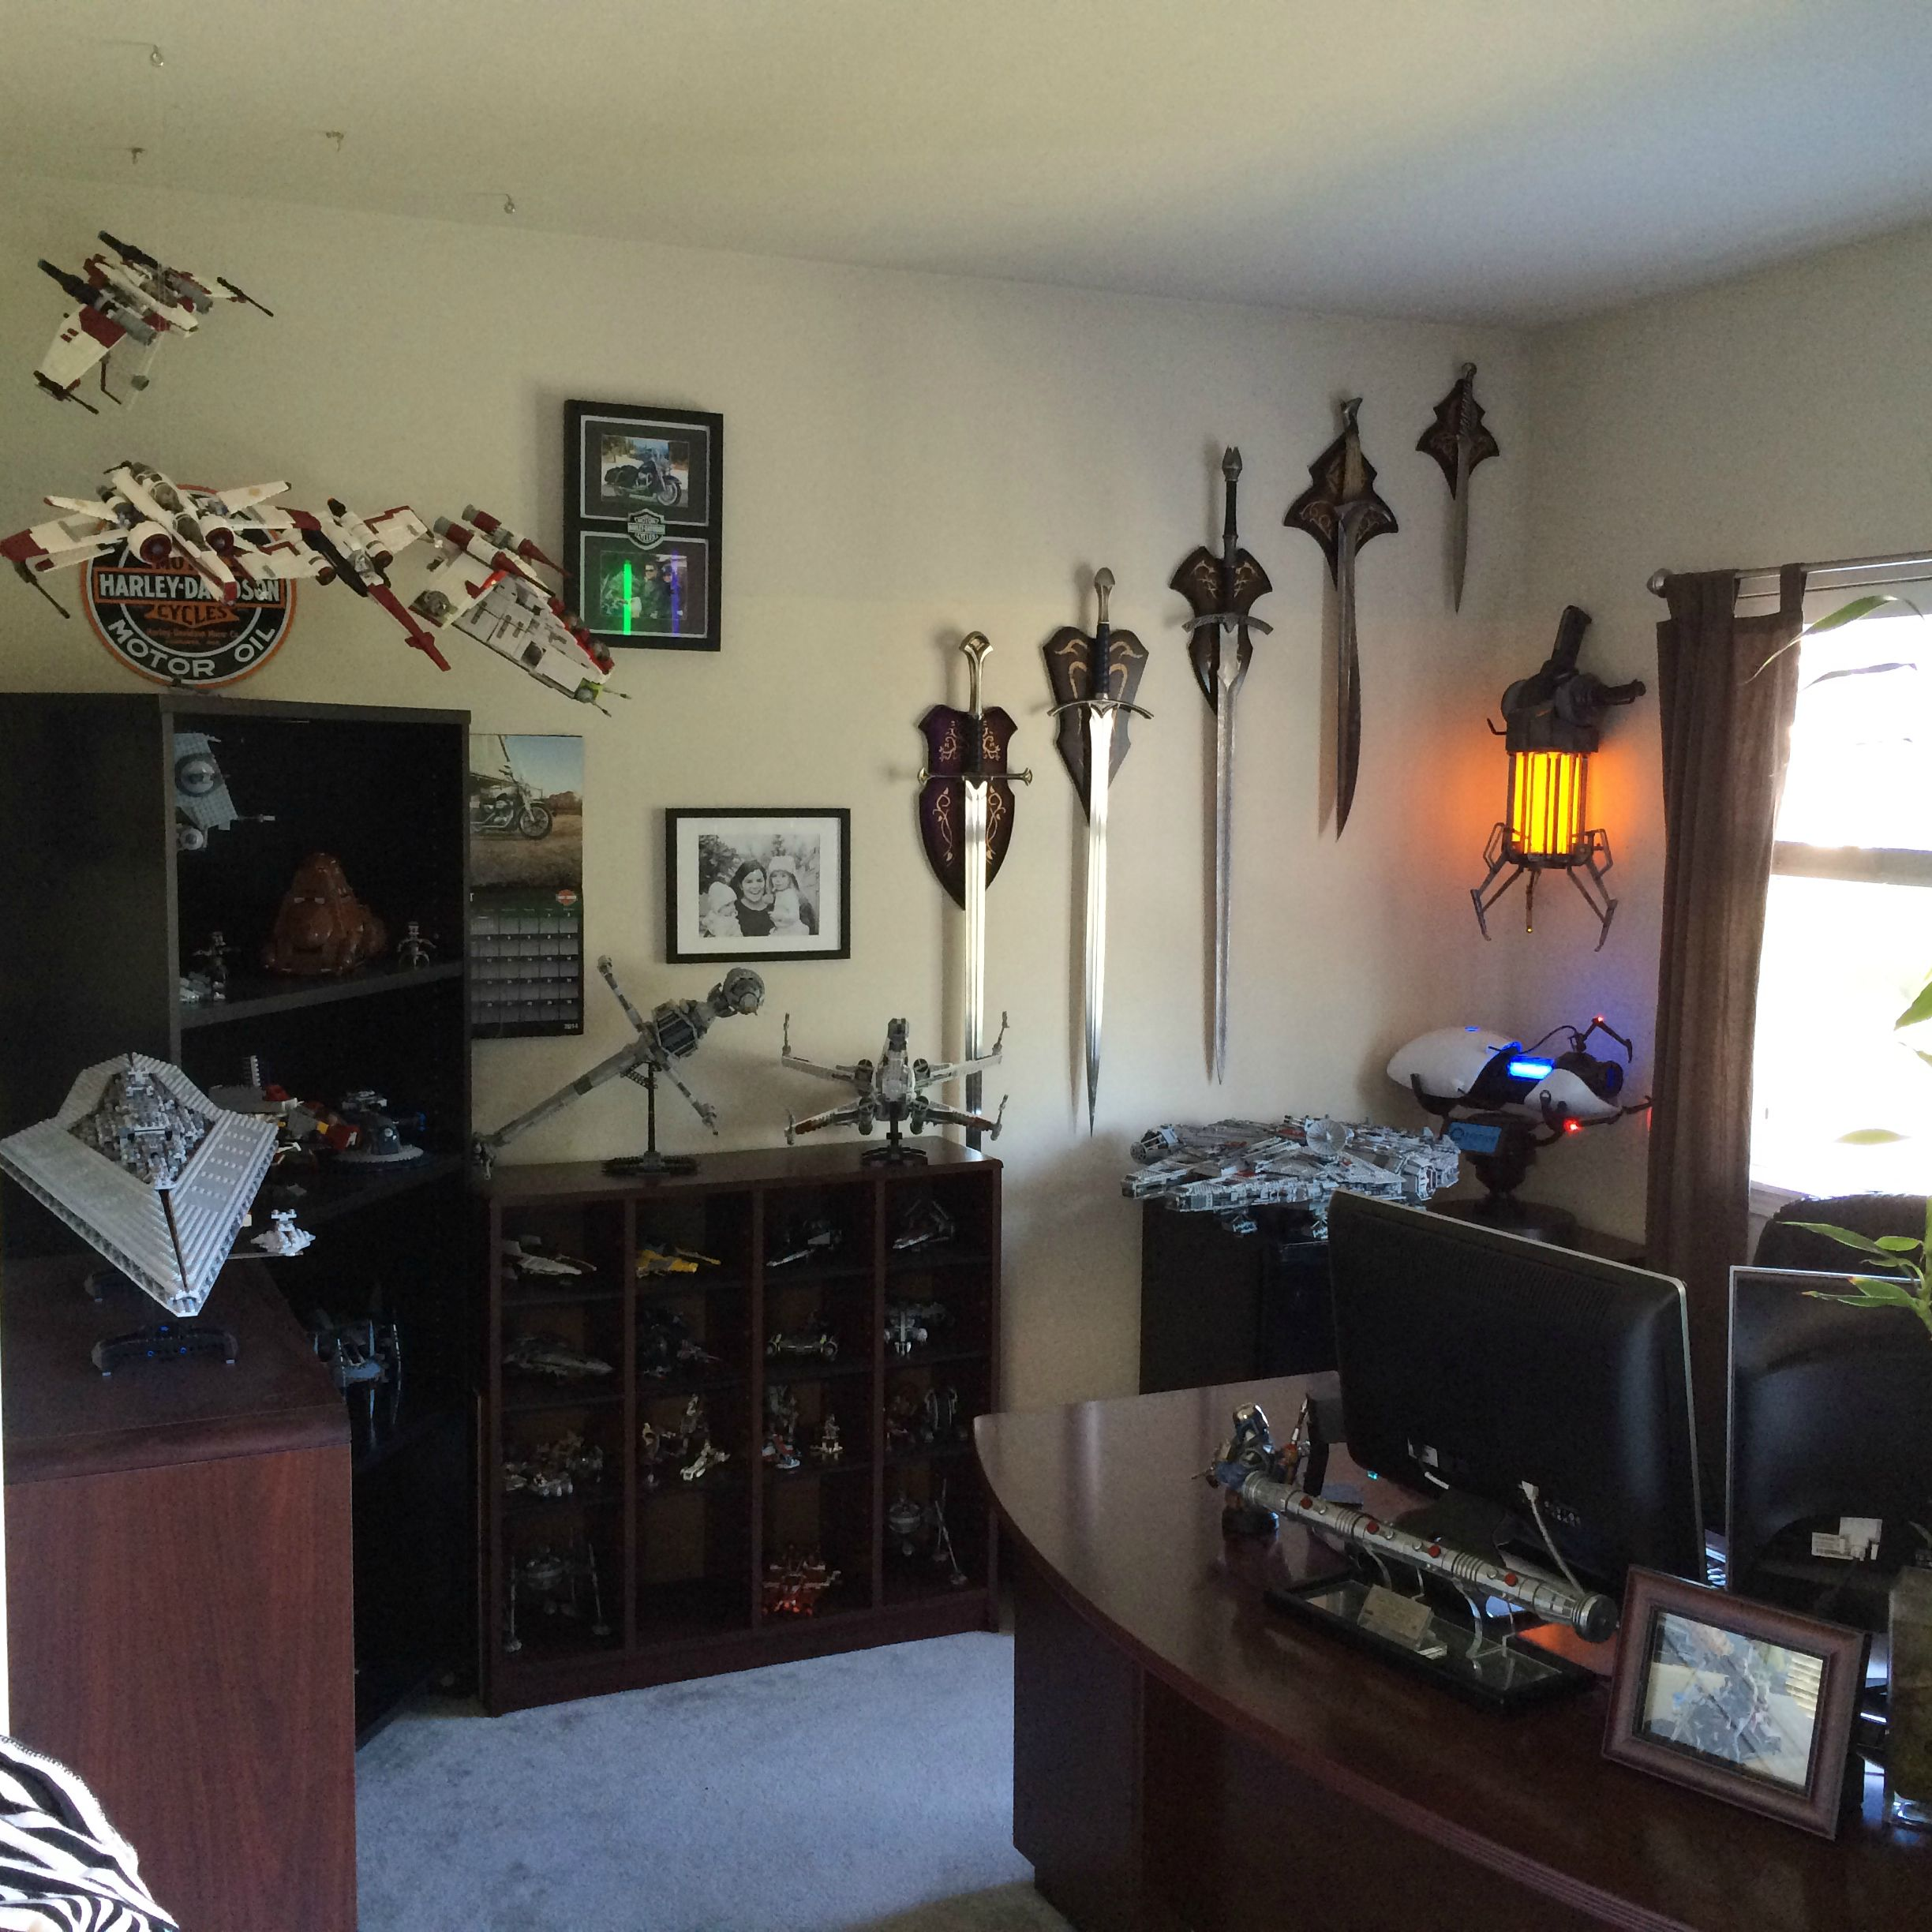 Star wars room for the man who grew up geeky geek decor Star wars bedroom ideas